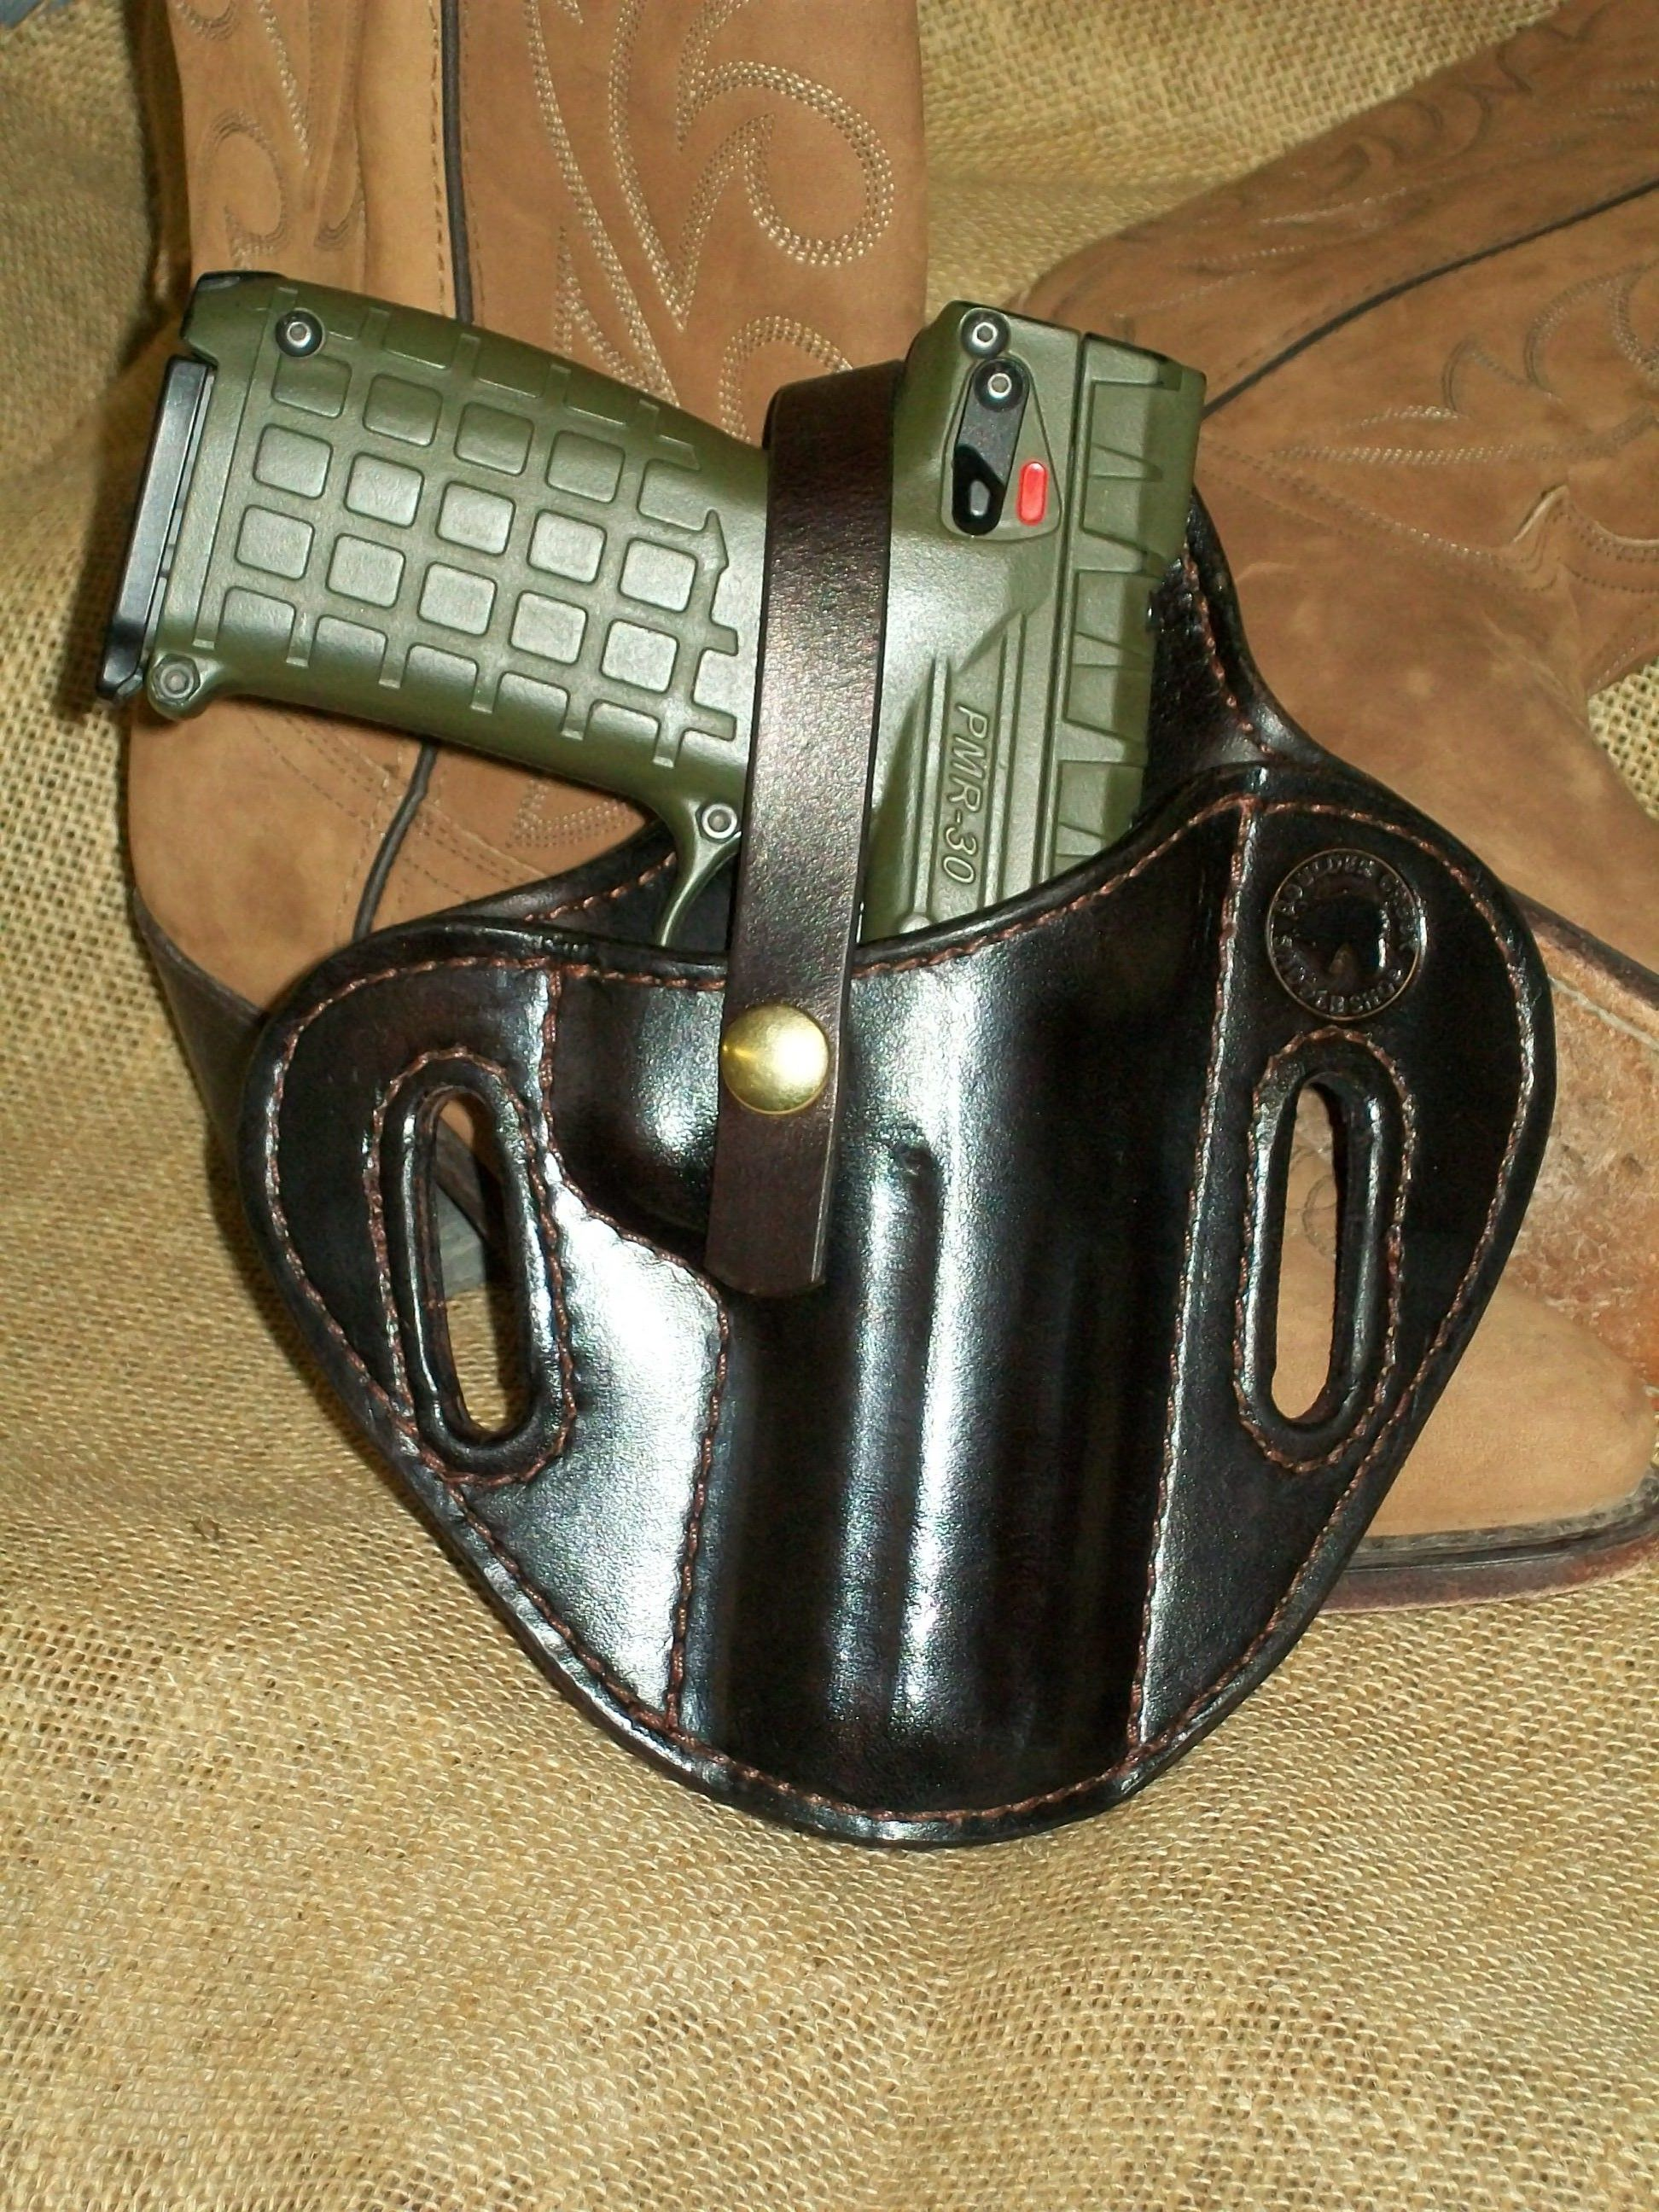 Pancake holster for a Kel-tec PMR30 pistol made at Boulder Creek